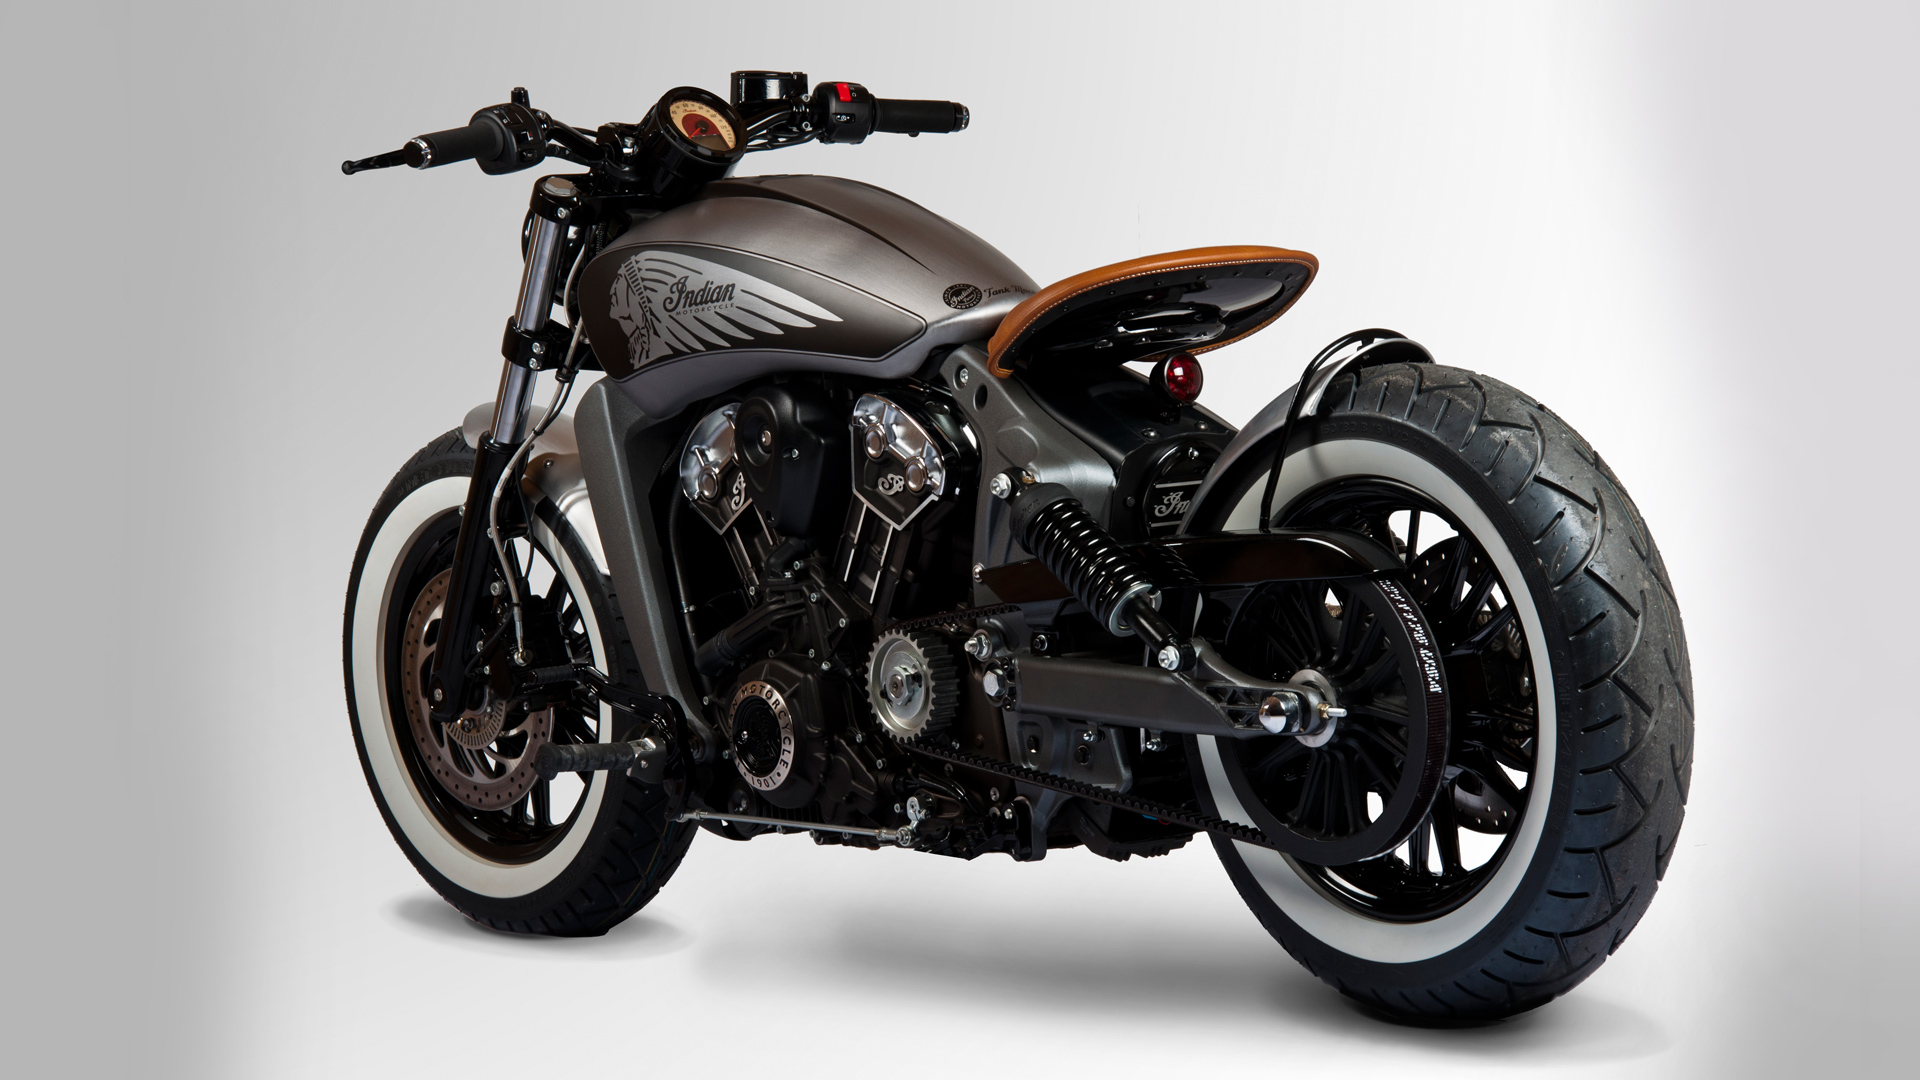 Indian scout bobber - Indian scout bike hd wallpaper ...